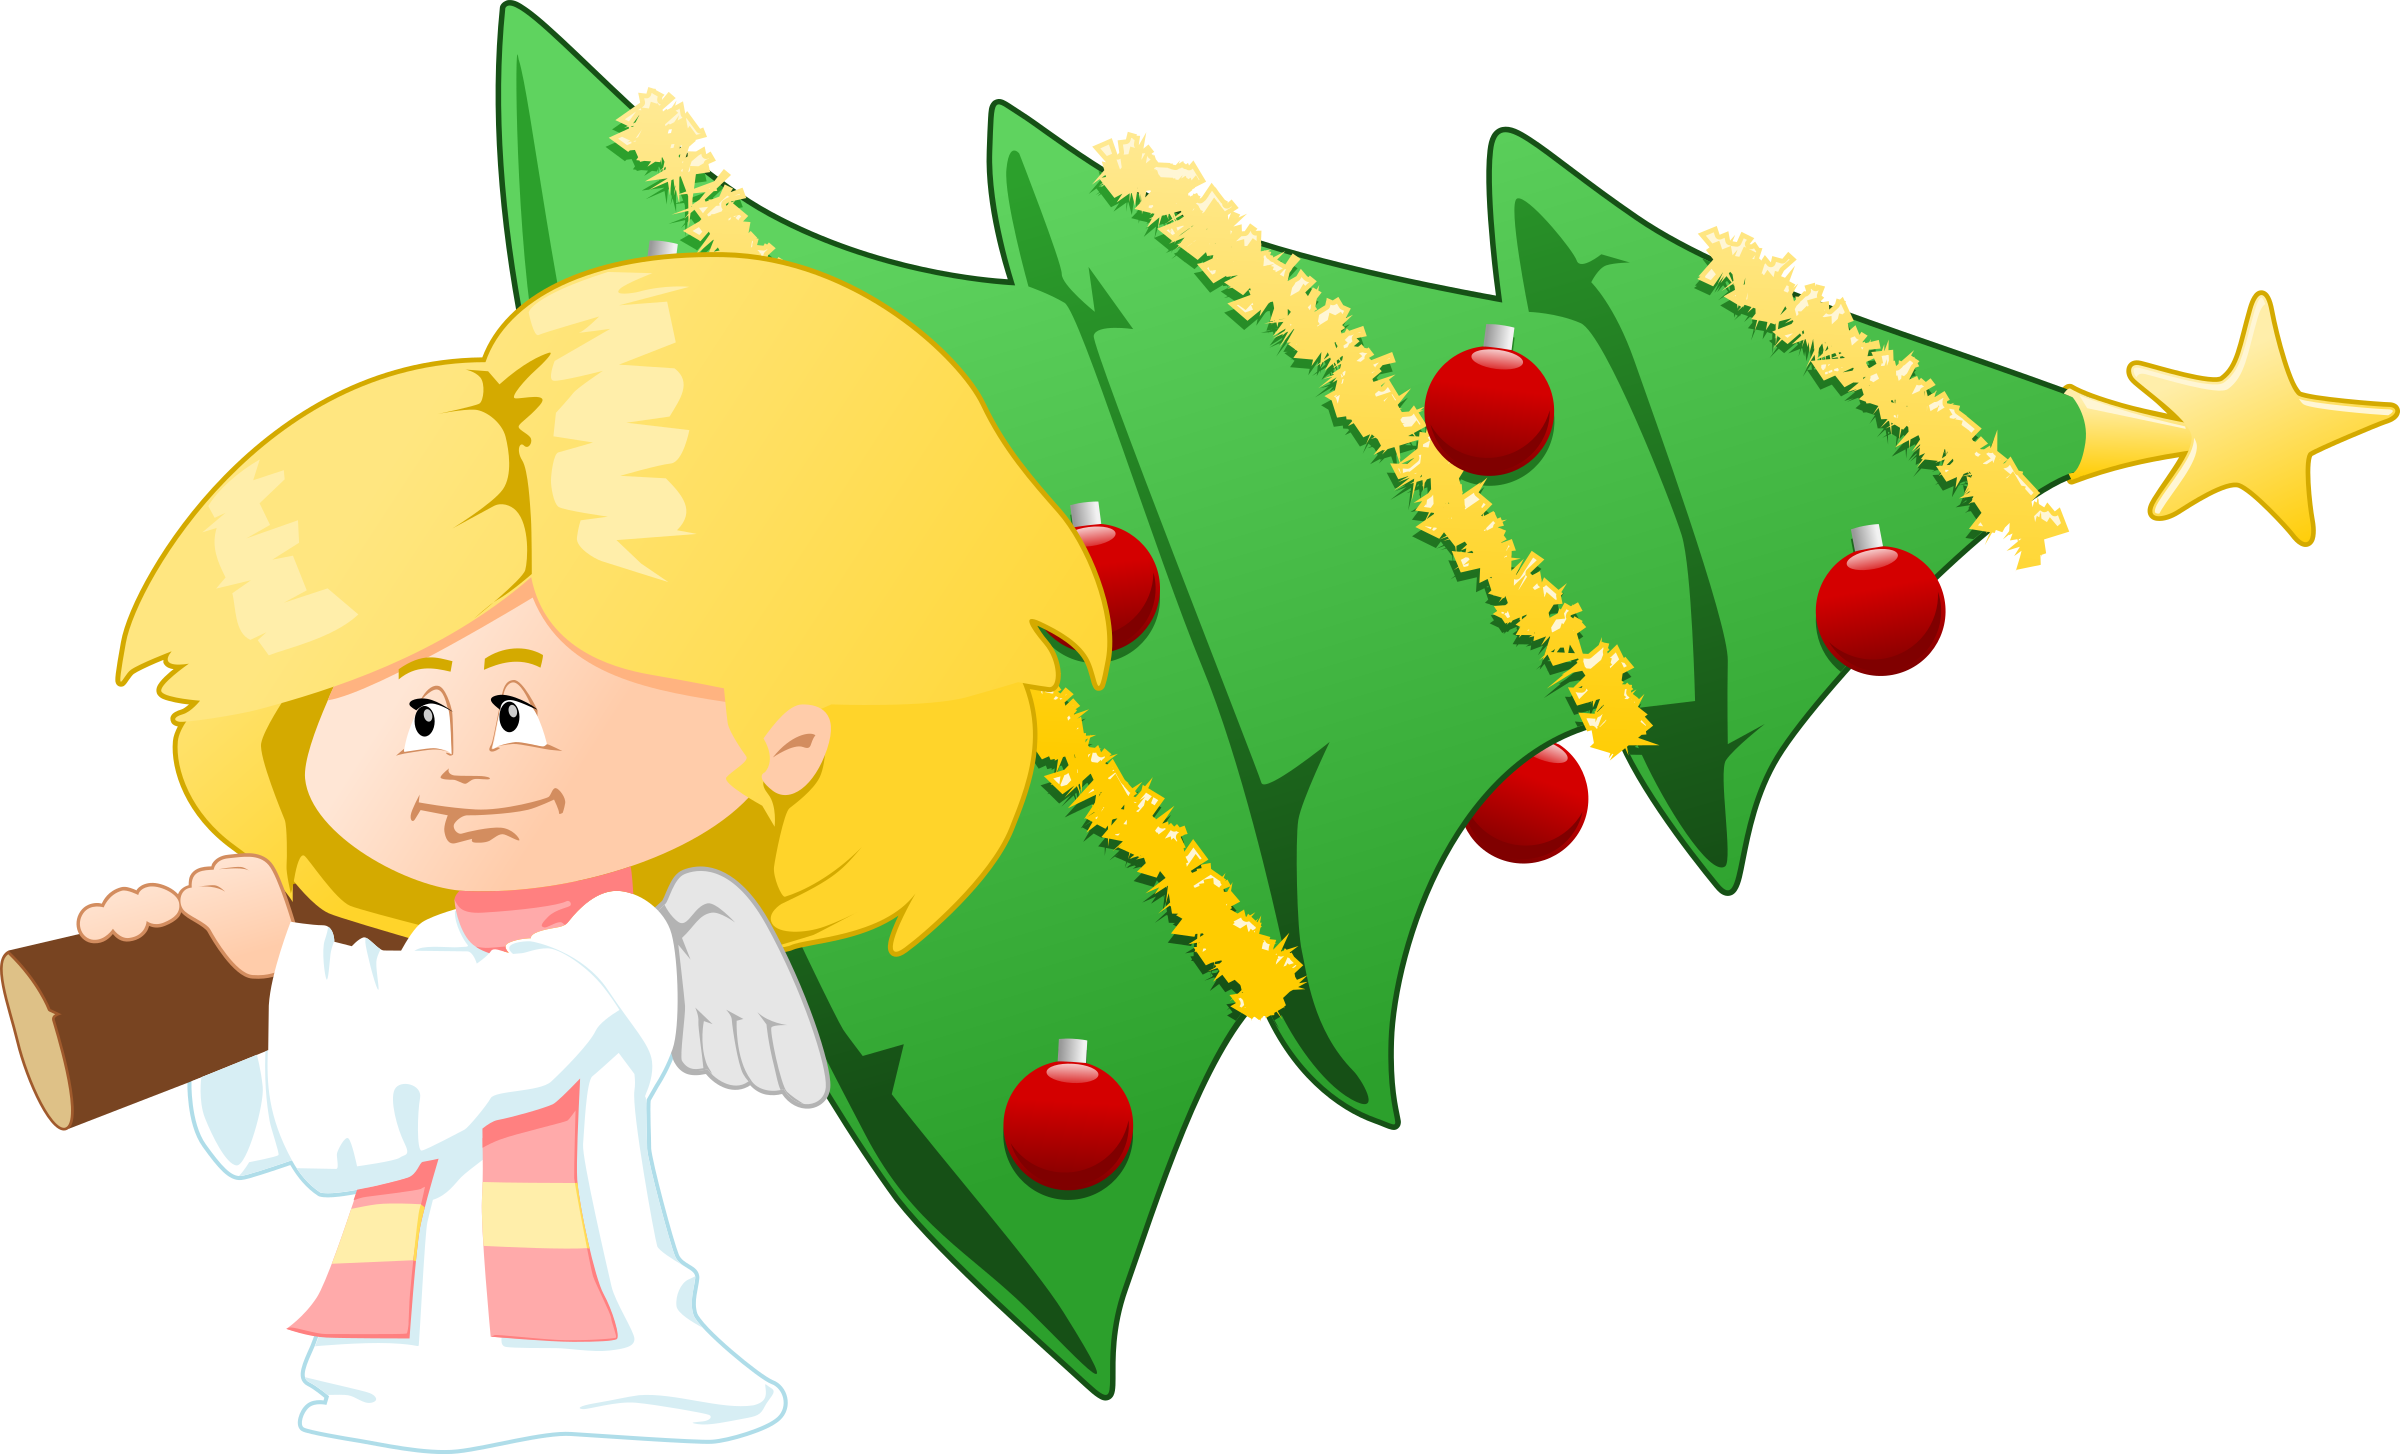 Christmas Angels Clipart.Download Christmas Angel Clipart Hq Png Image Freepngimg